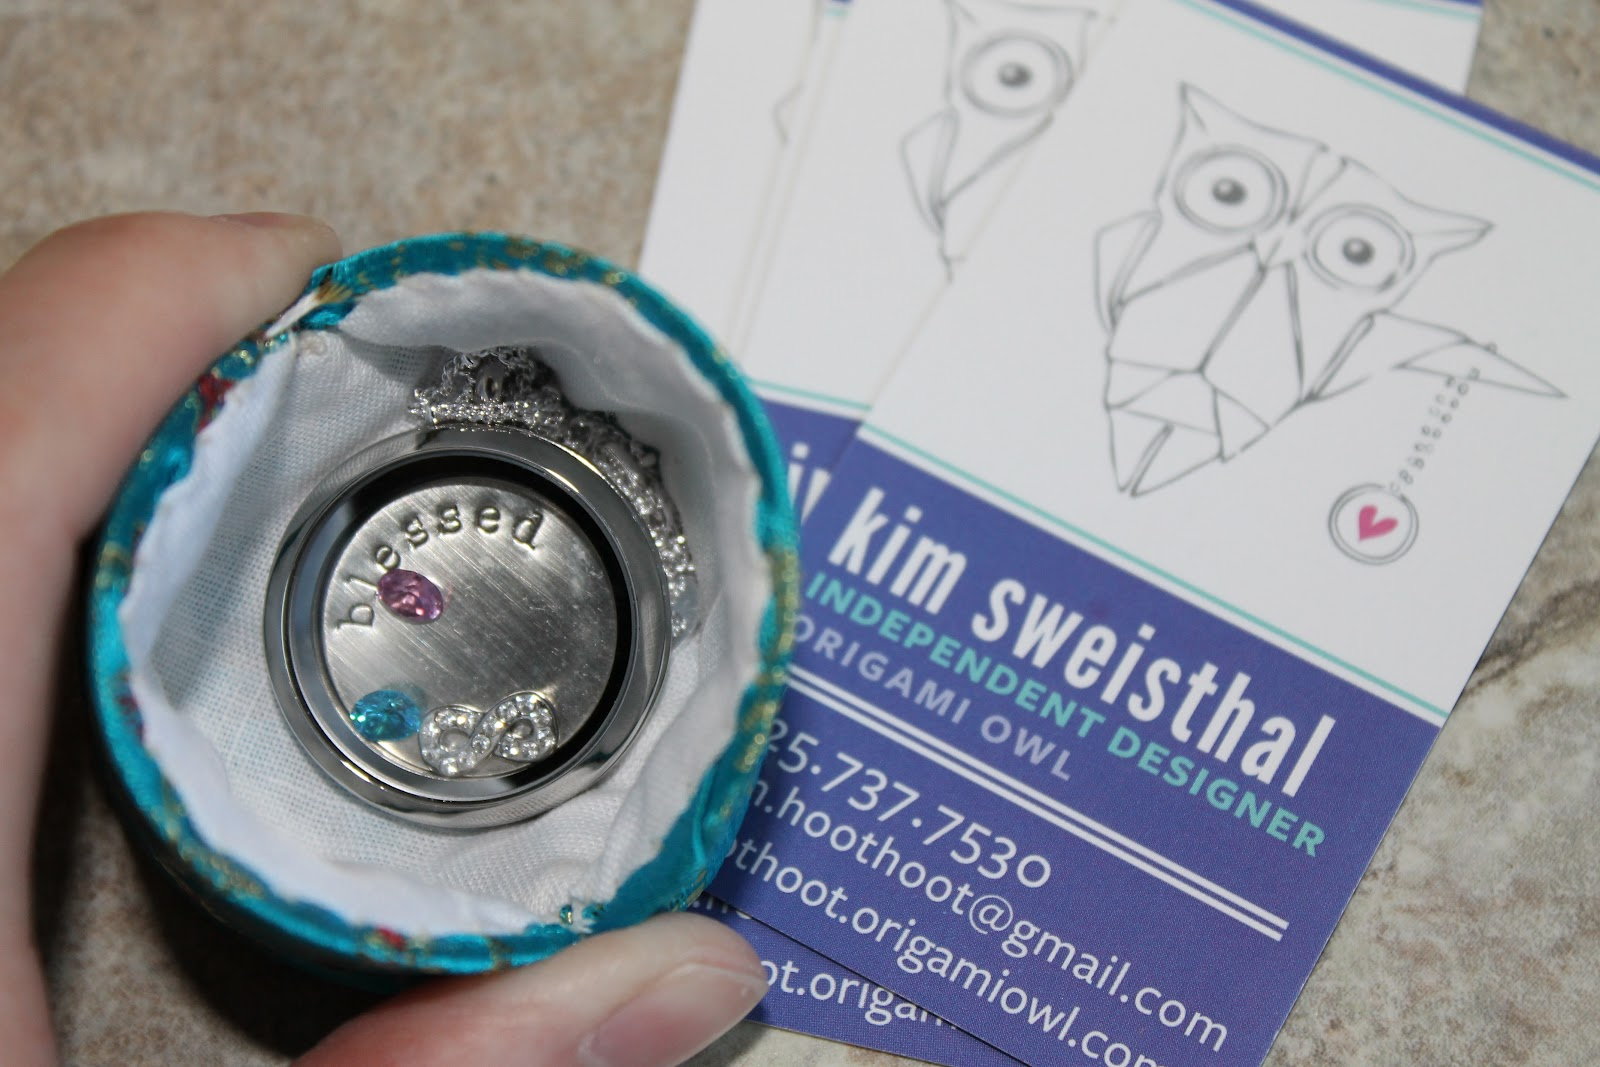 My Creative Side: Origami Owl REVIEW! - photo#2